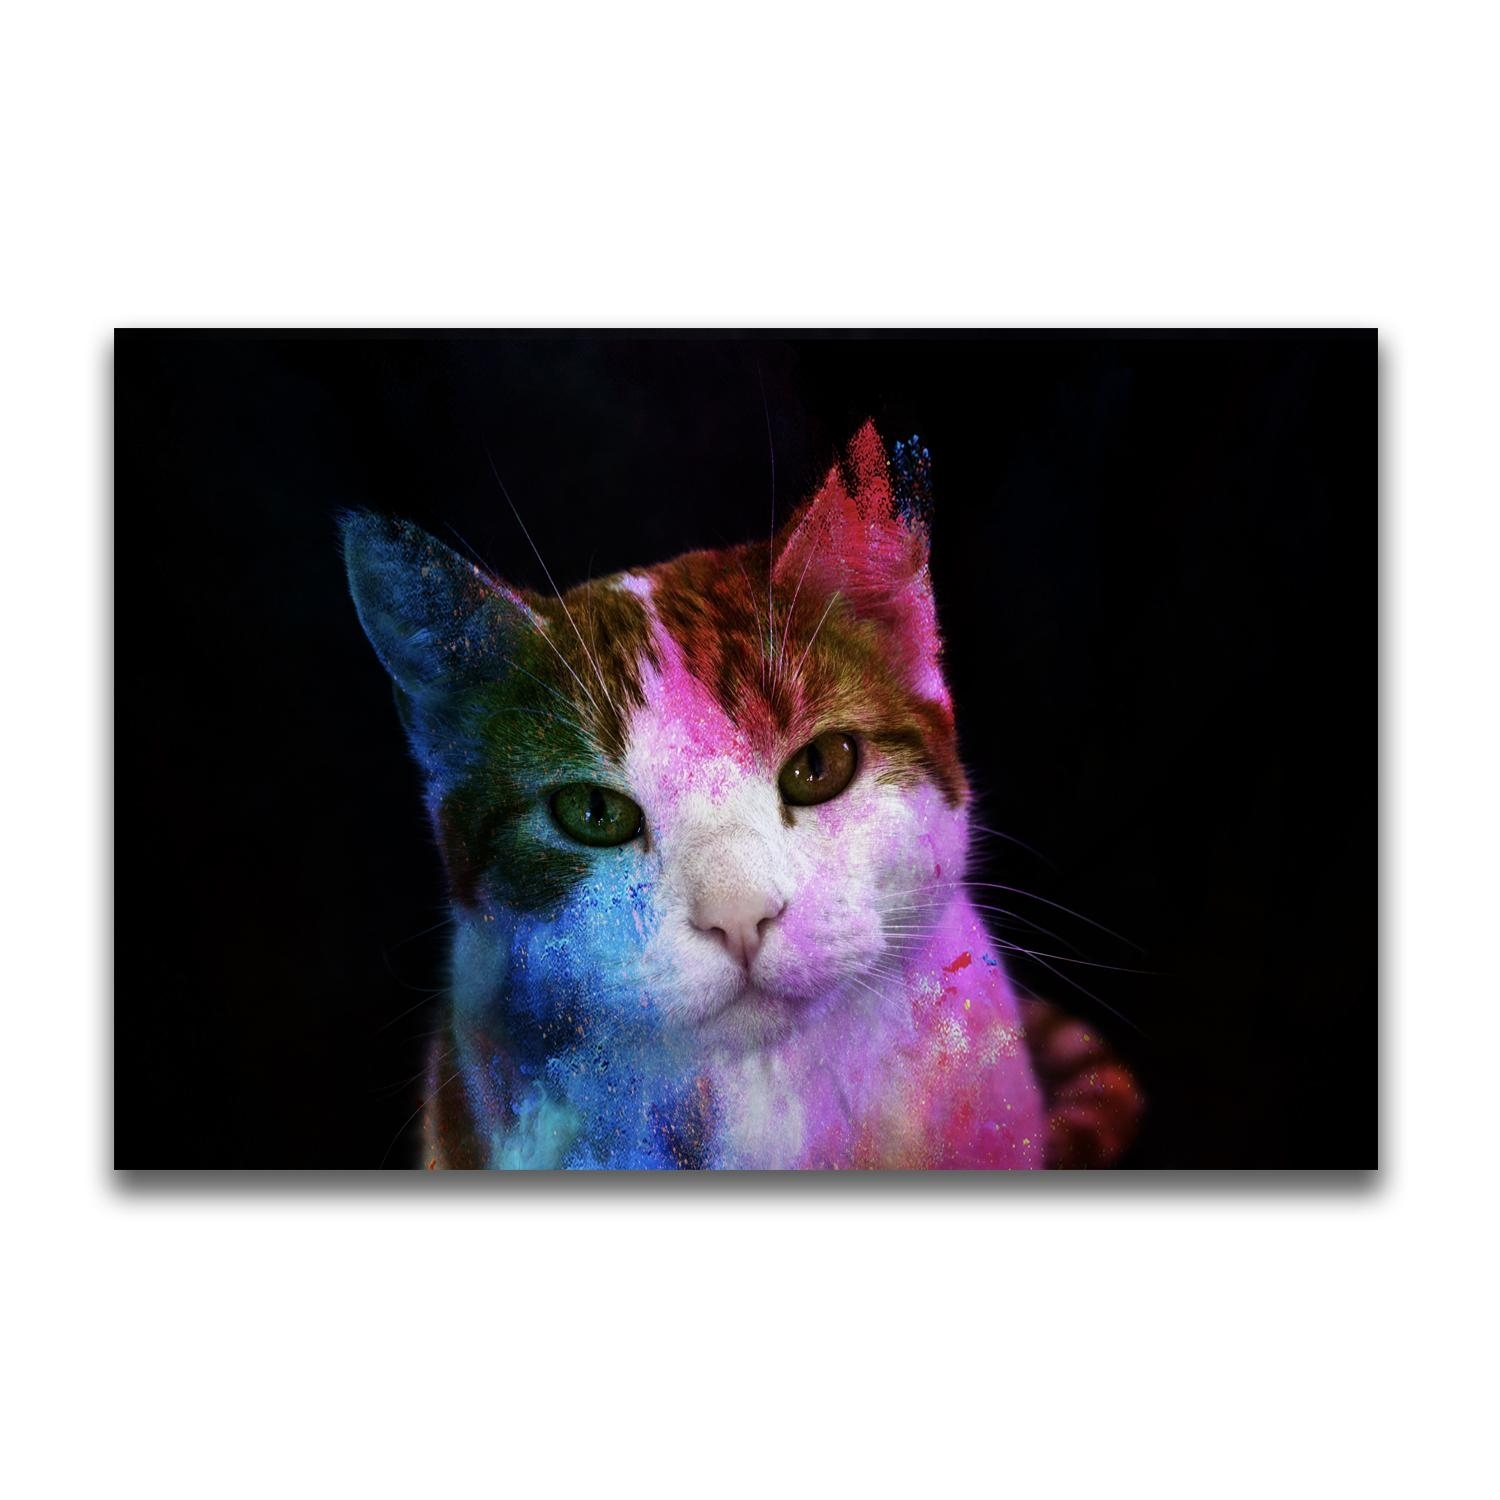 Yj Art A Colorful Cat Unframed Modern Canvas Wall Art For Home And Inside Cat Canvas Wall Art (Gallery 5 of 20)